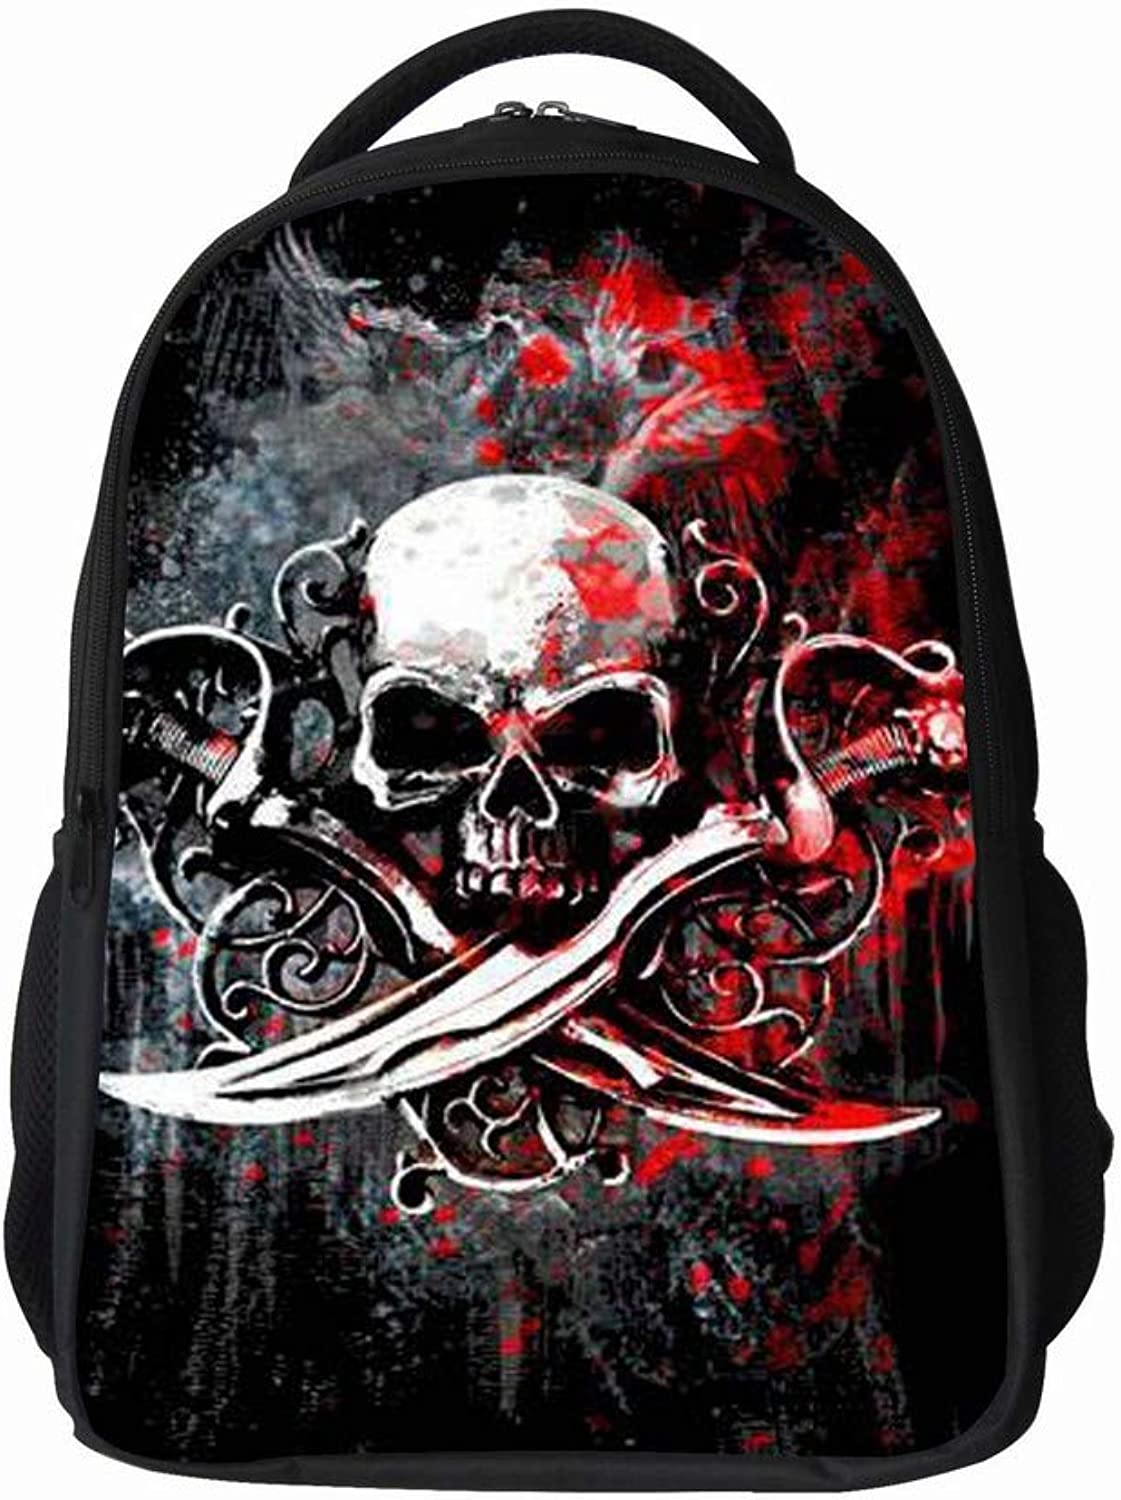 QiXian Pupils Skull Bag Burden Reduction MultiFunction Backpack Personality MultiFunction Durable Backpack, b